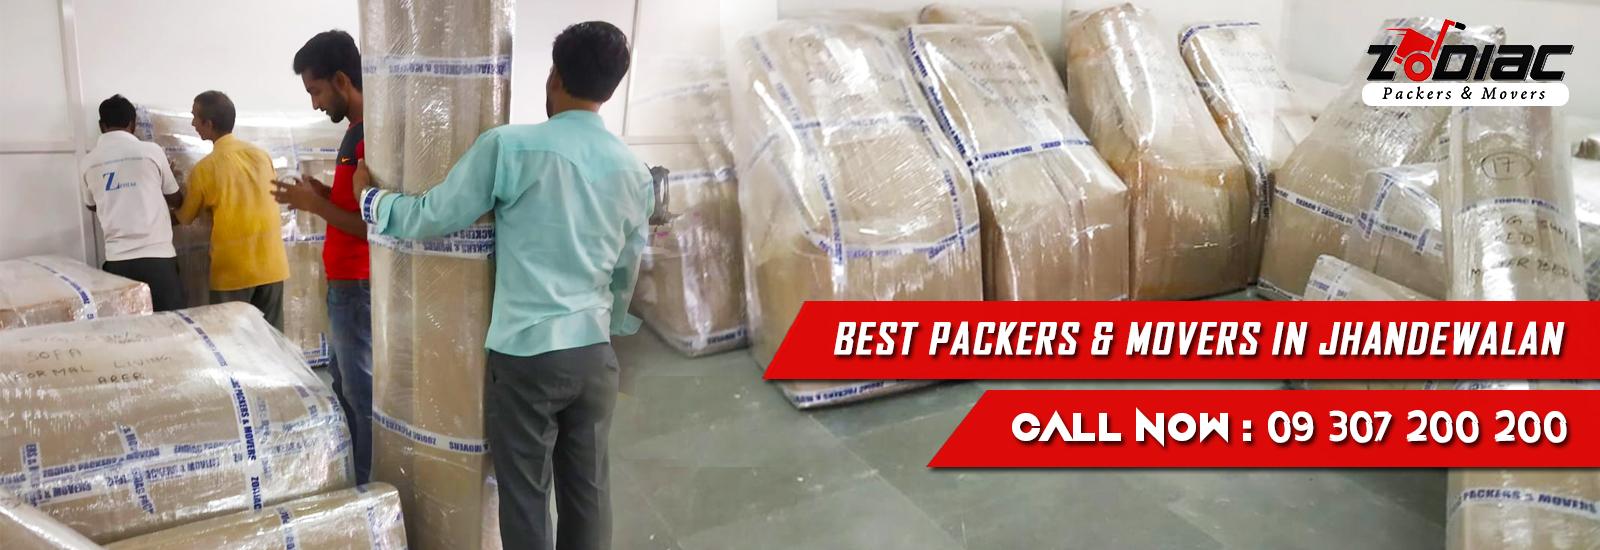 Packers and Movers in Jhandewalan